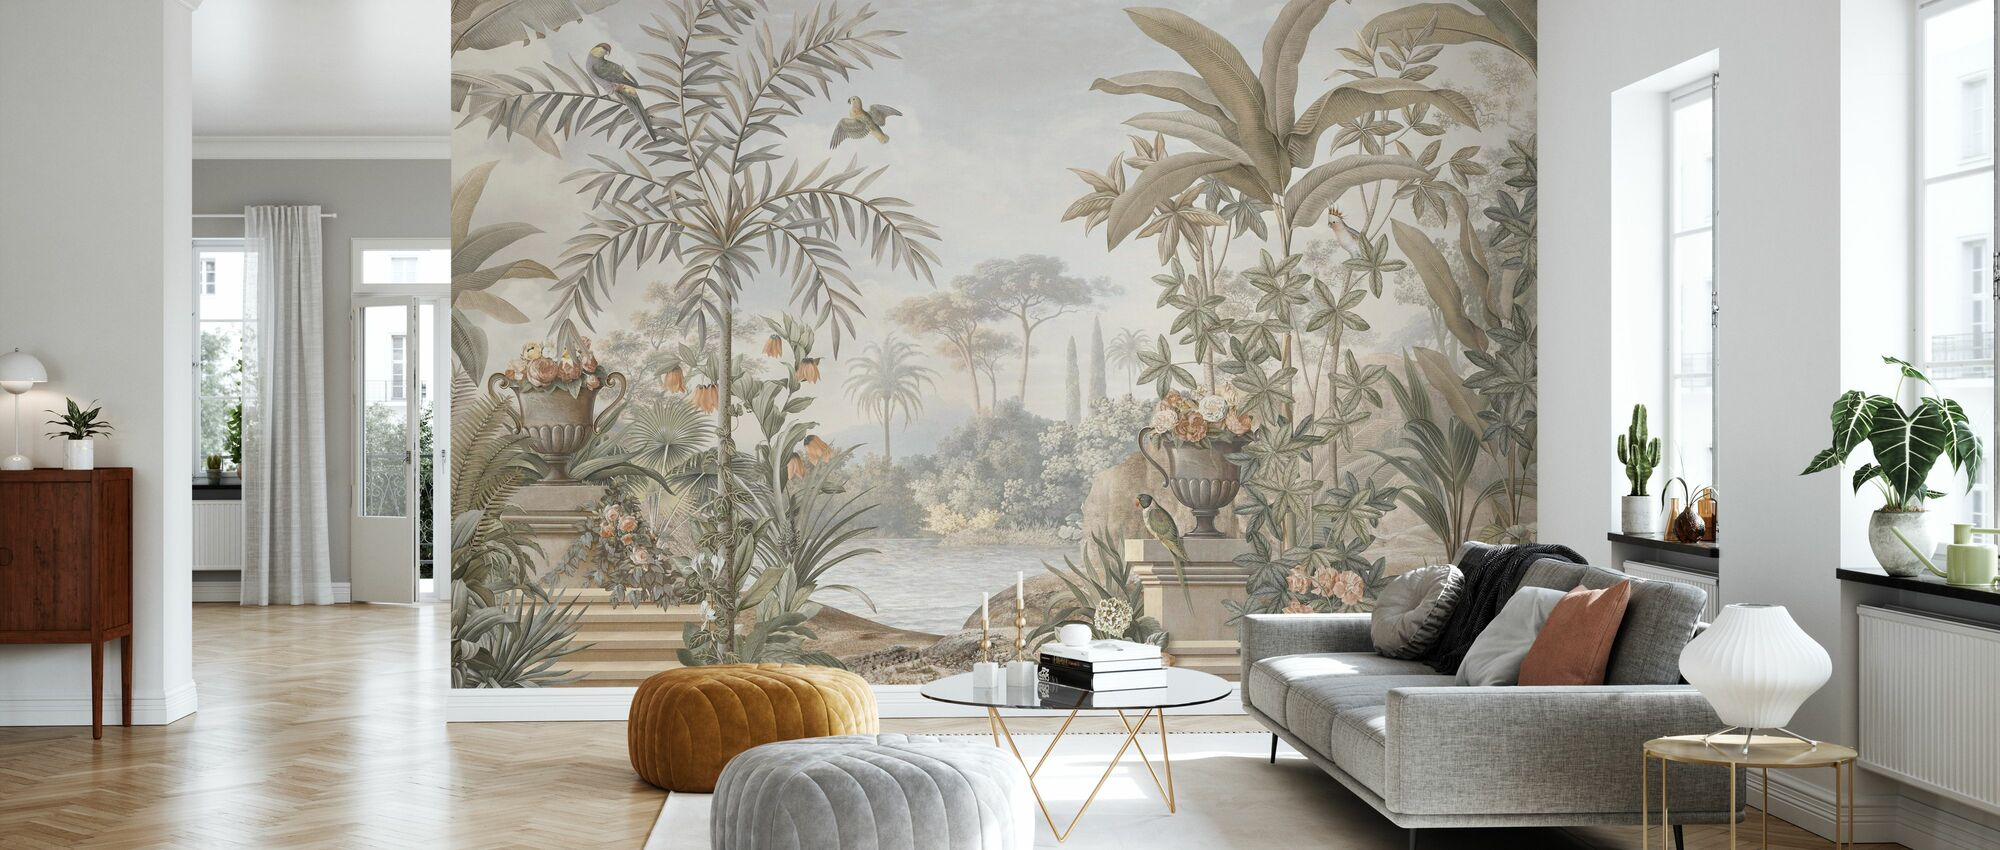 Tropical Patio - Sepia - Wallpaper - Living Room